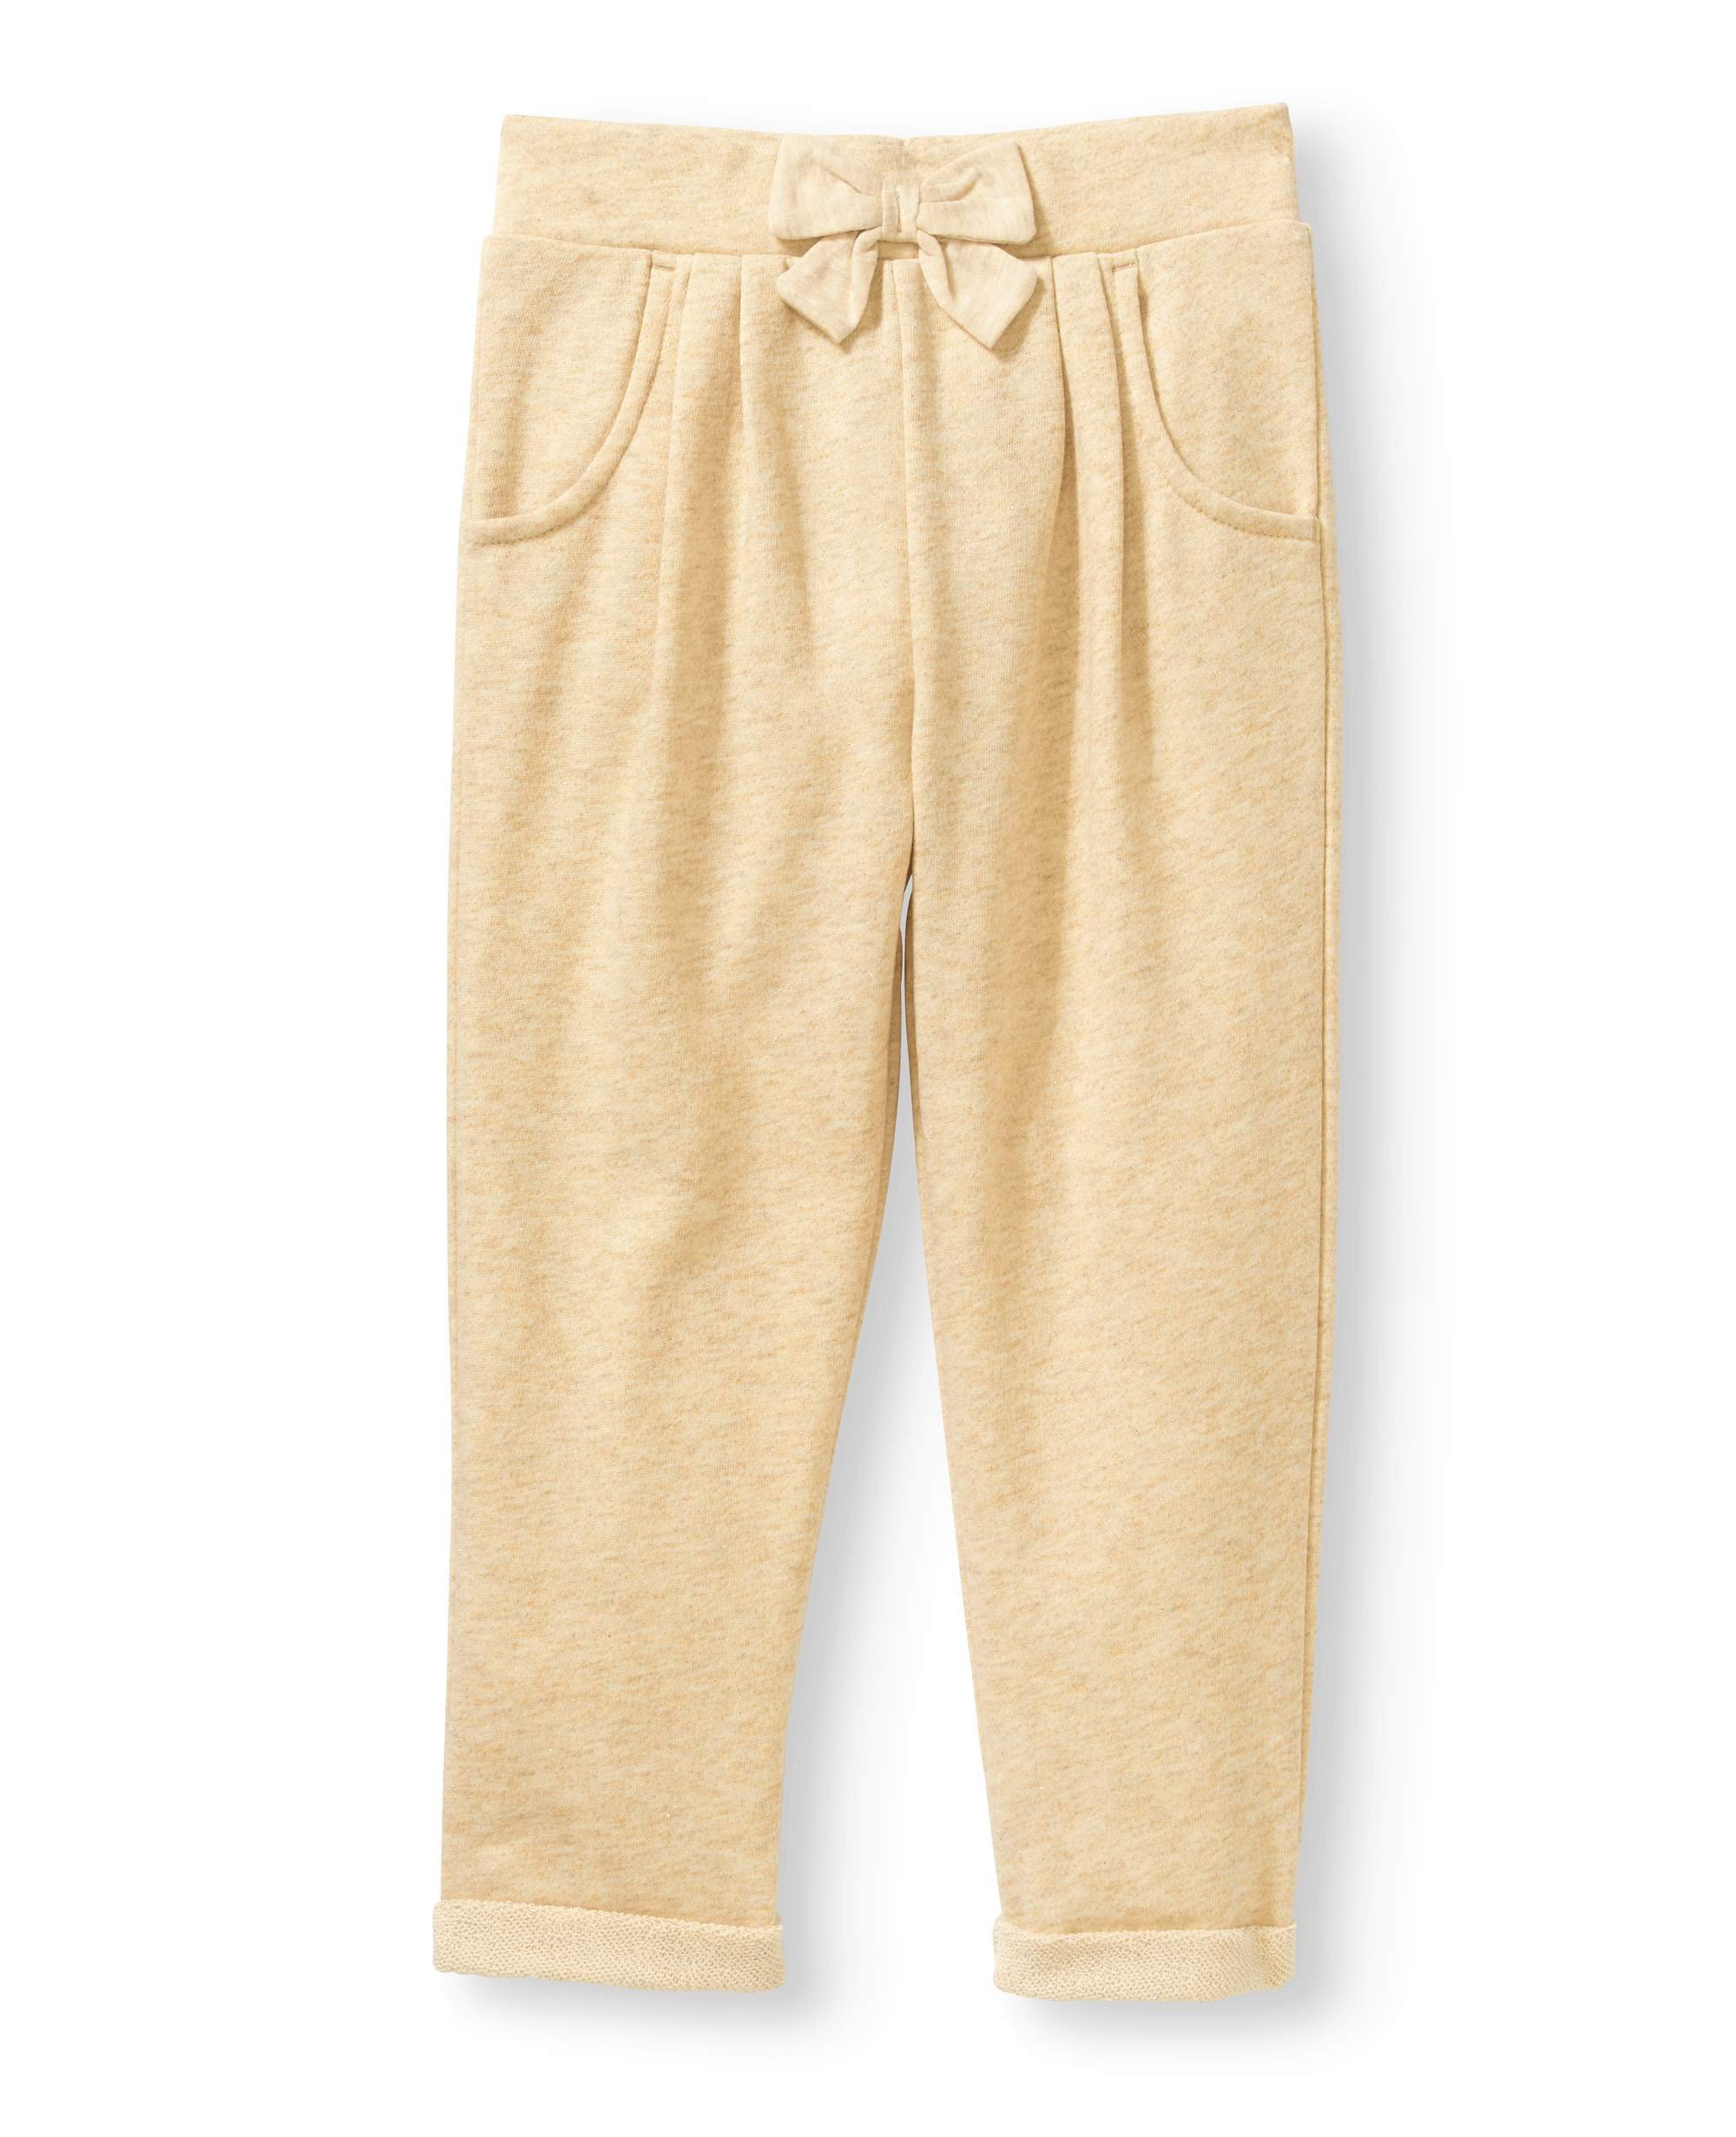 Baby Toddler Girls' French Terry Jogger Pants